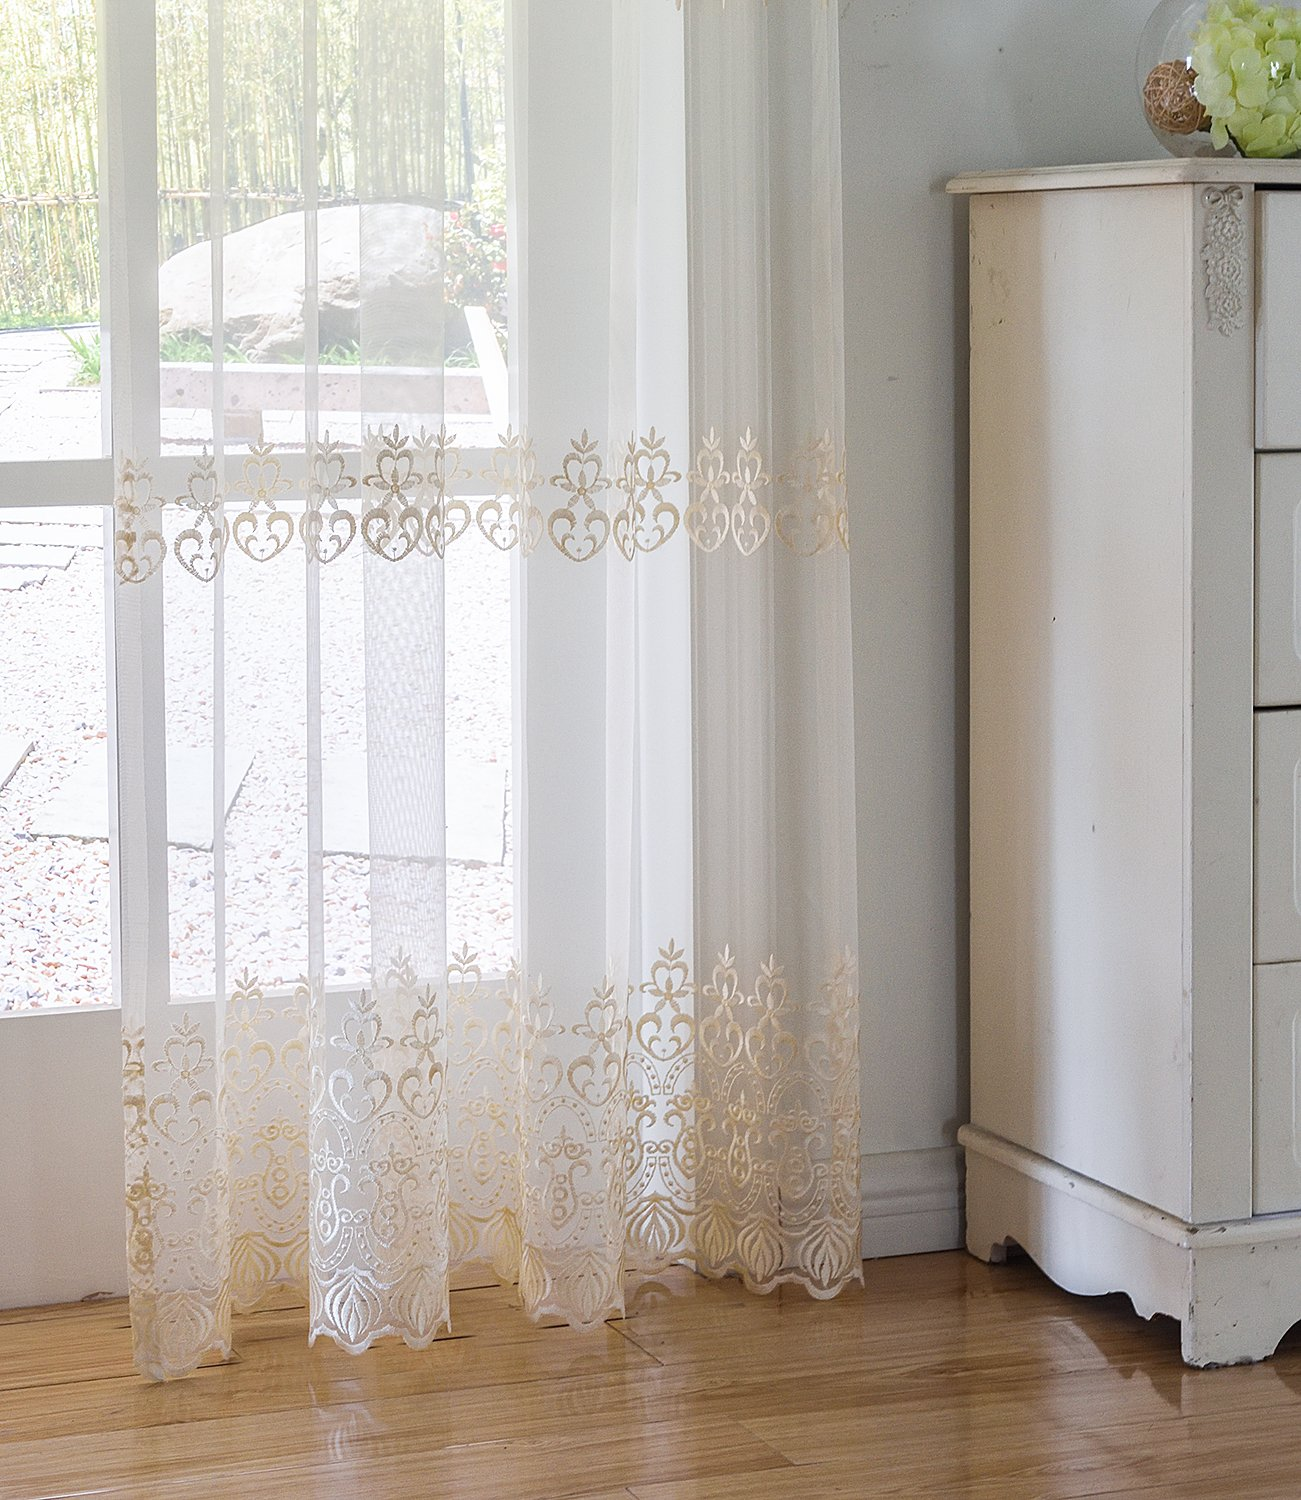 Aside Bside Sheer Curtains Tiny Arrow Embroidered Pattern Relaxed Casual Style Rod Pocket Top for Windows (1 Panel, W 52 x L 104 inch, White 18) -1281643521048518C1PGC by Aside Bside (Image #7)